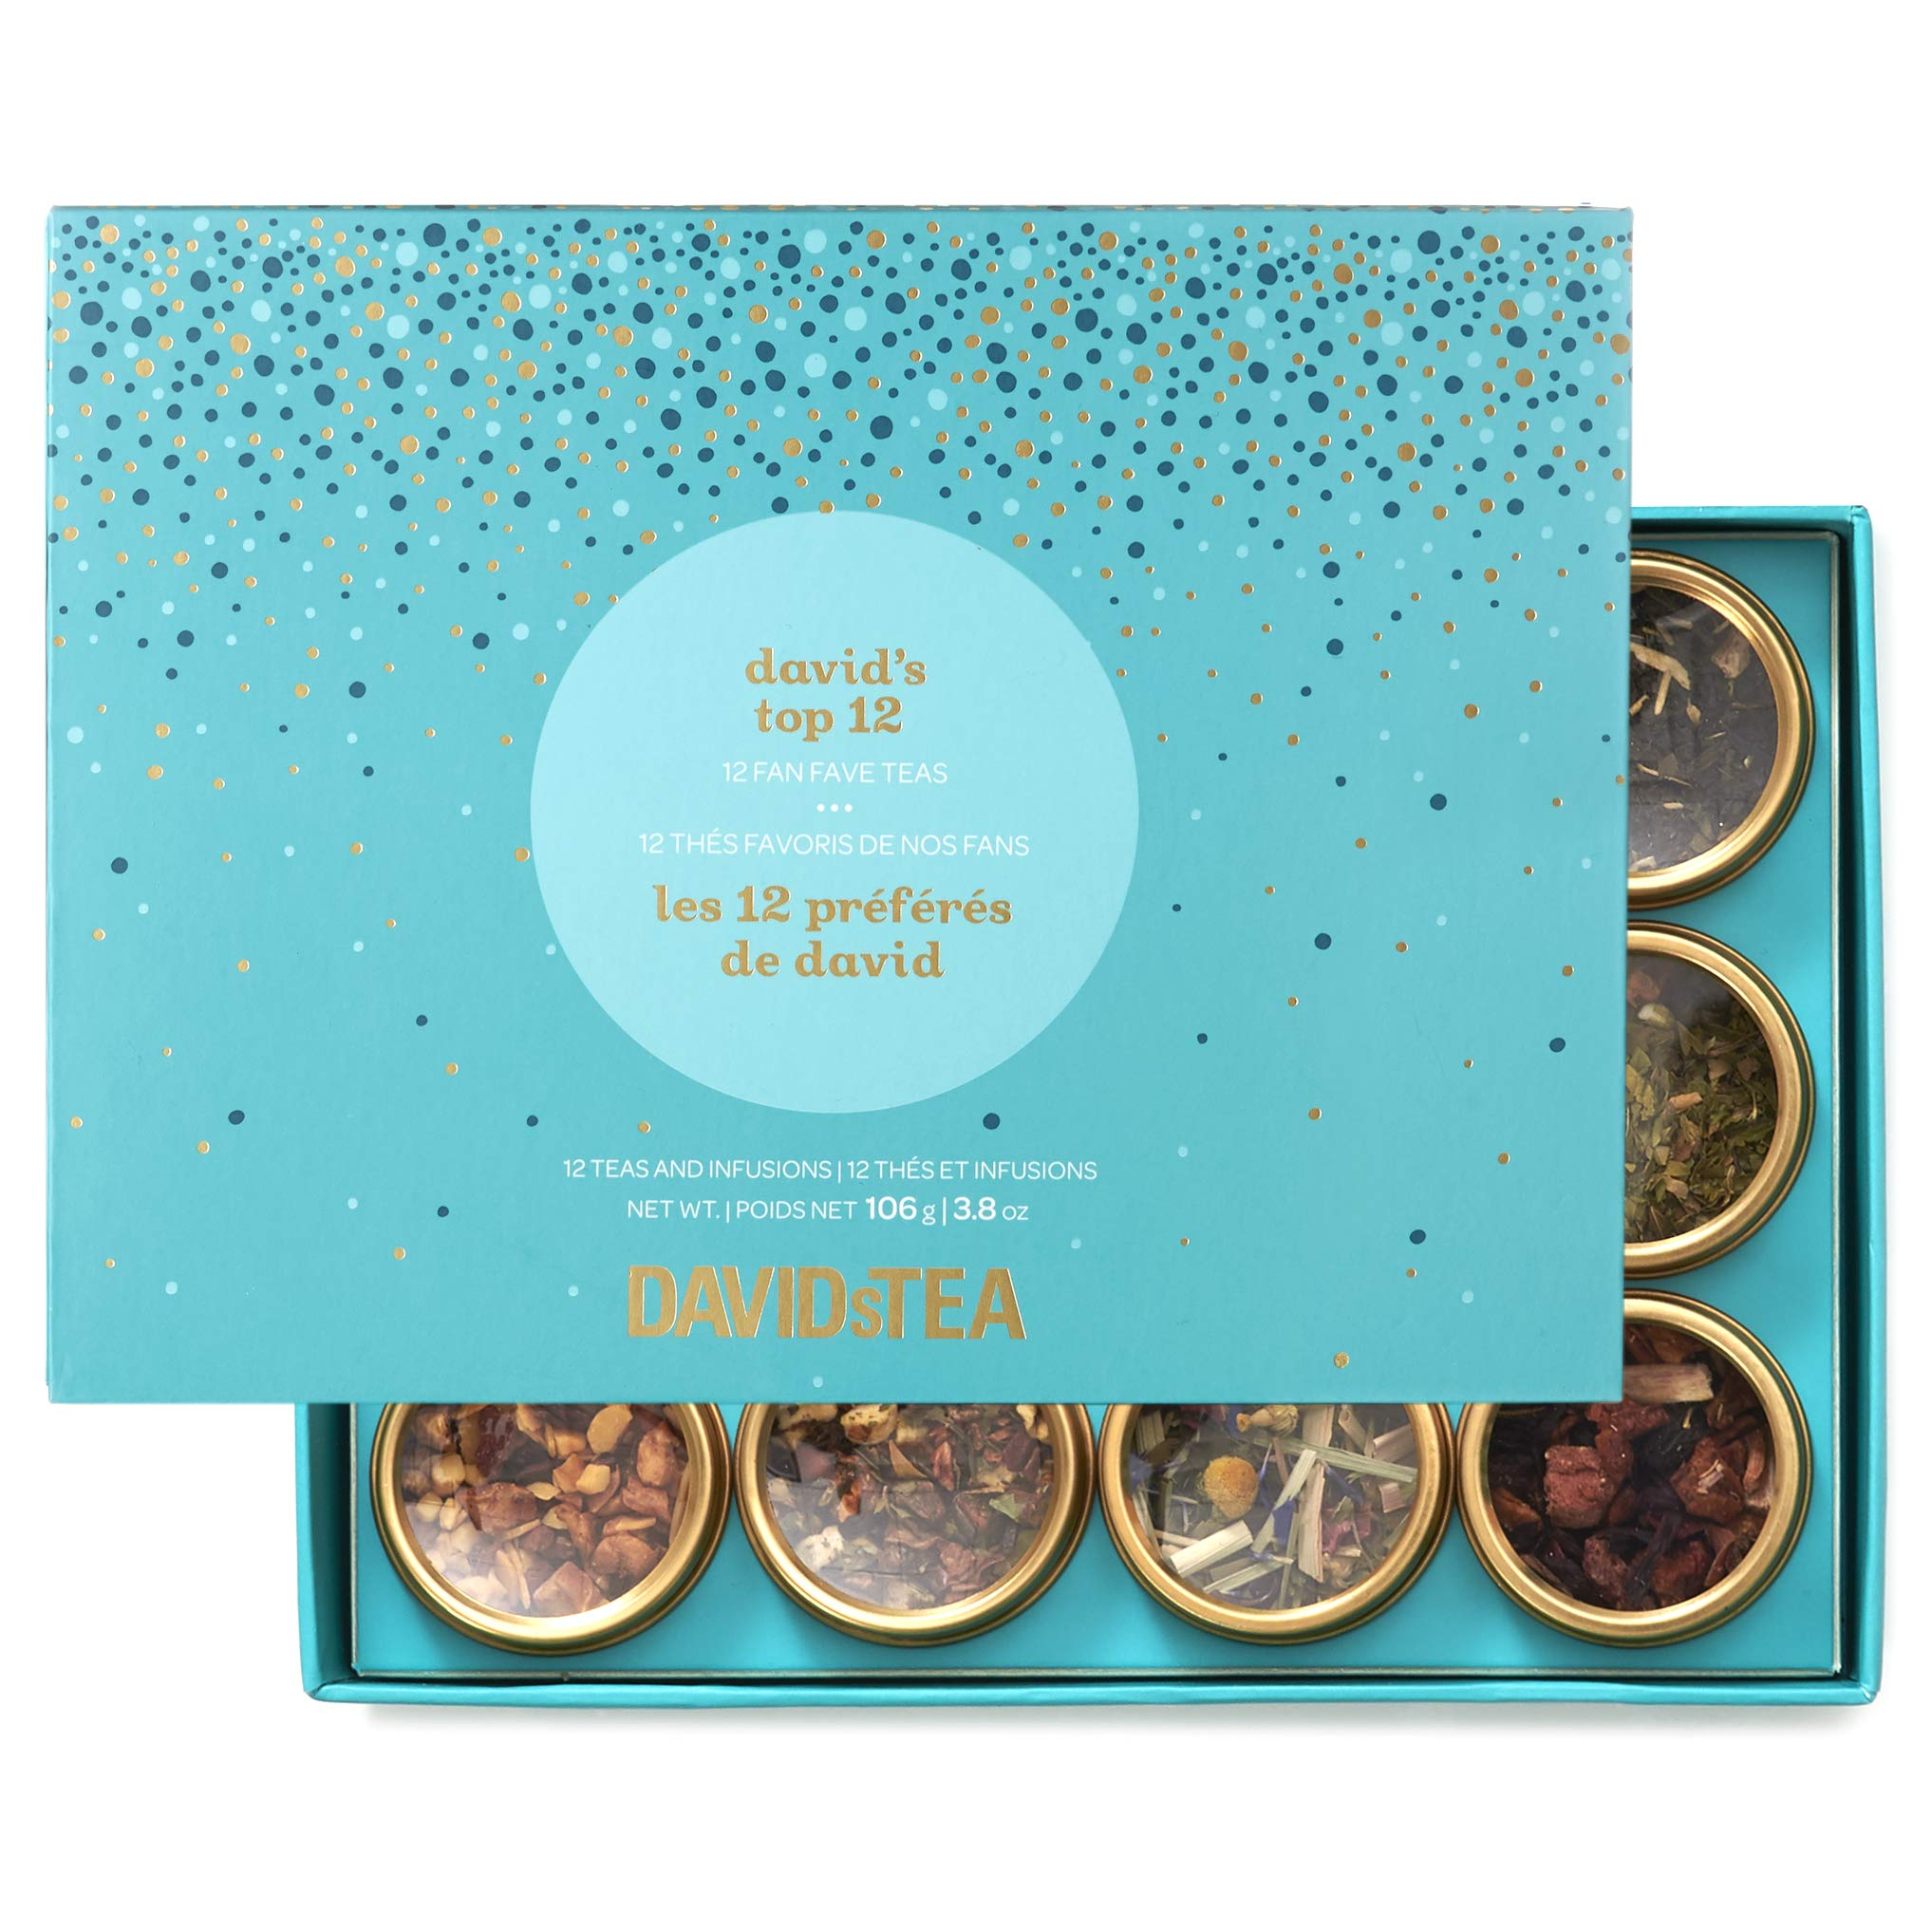 DAVIDsTEA David's Top 12 Tea Sampler, Loose Leaf Tea Gift Set, Assortment of 12 Fan Favourite Teas, 106 g / 3.8 oz (SP) by DAVIDsTEA